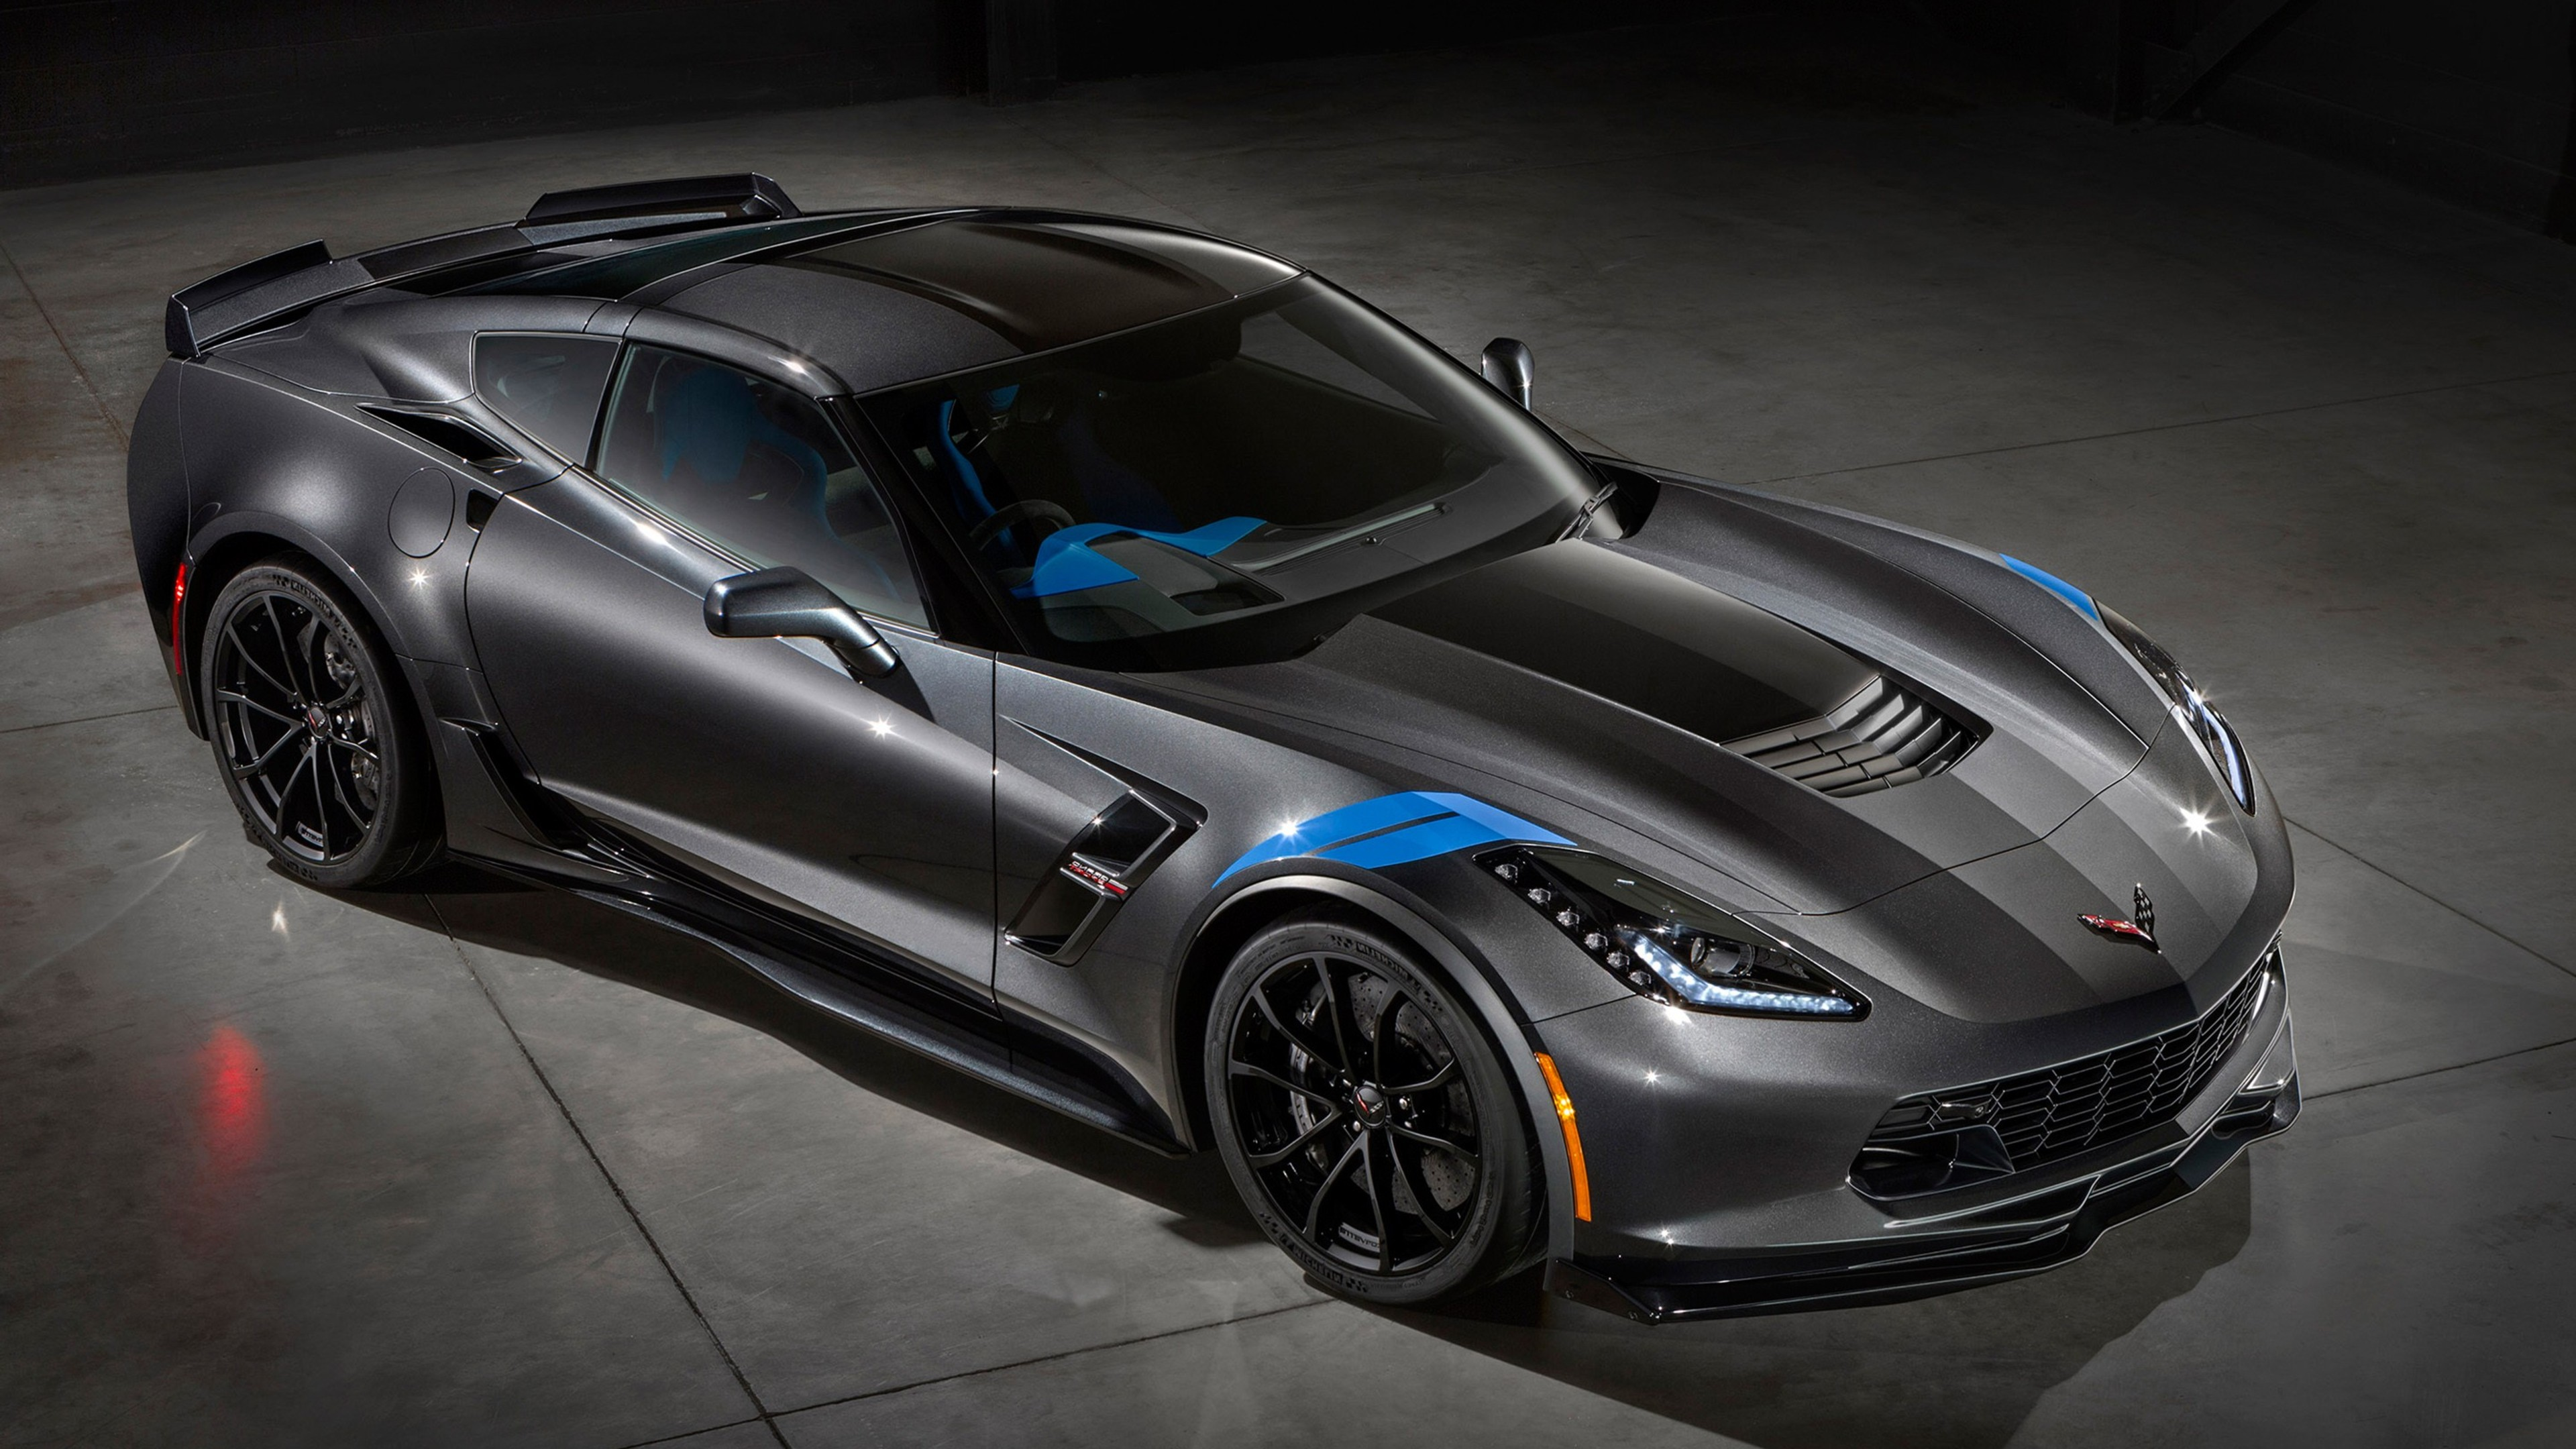 Chevrolet Corvette Grand Sport HD Cars 4k Wallpapers Images